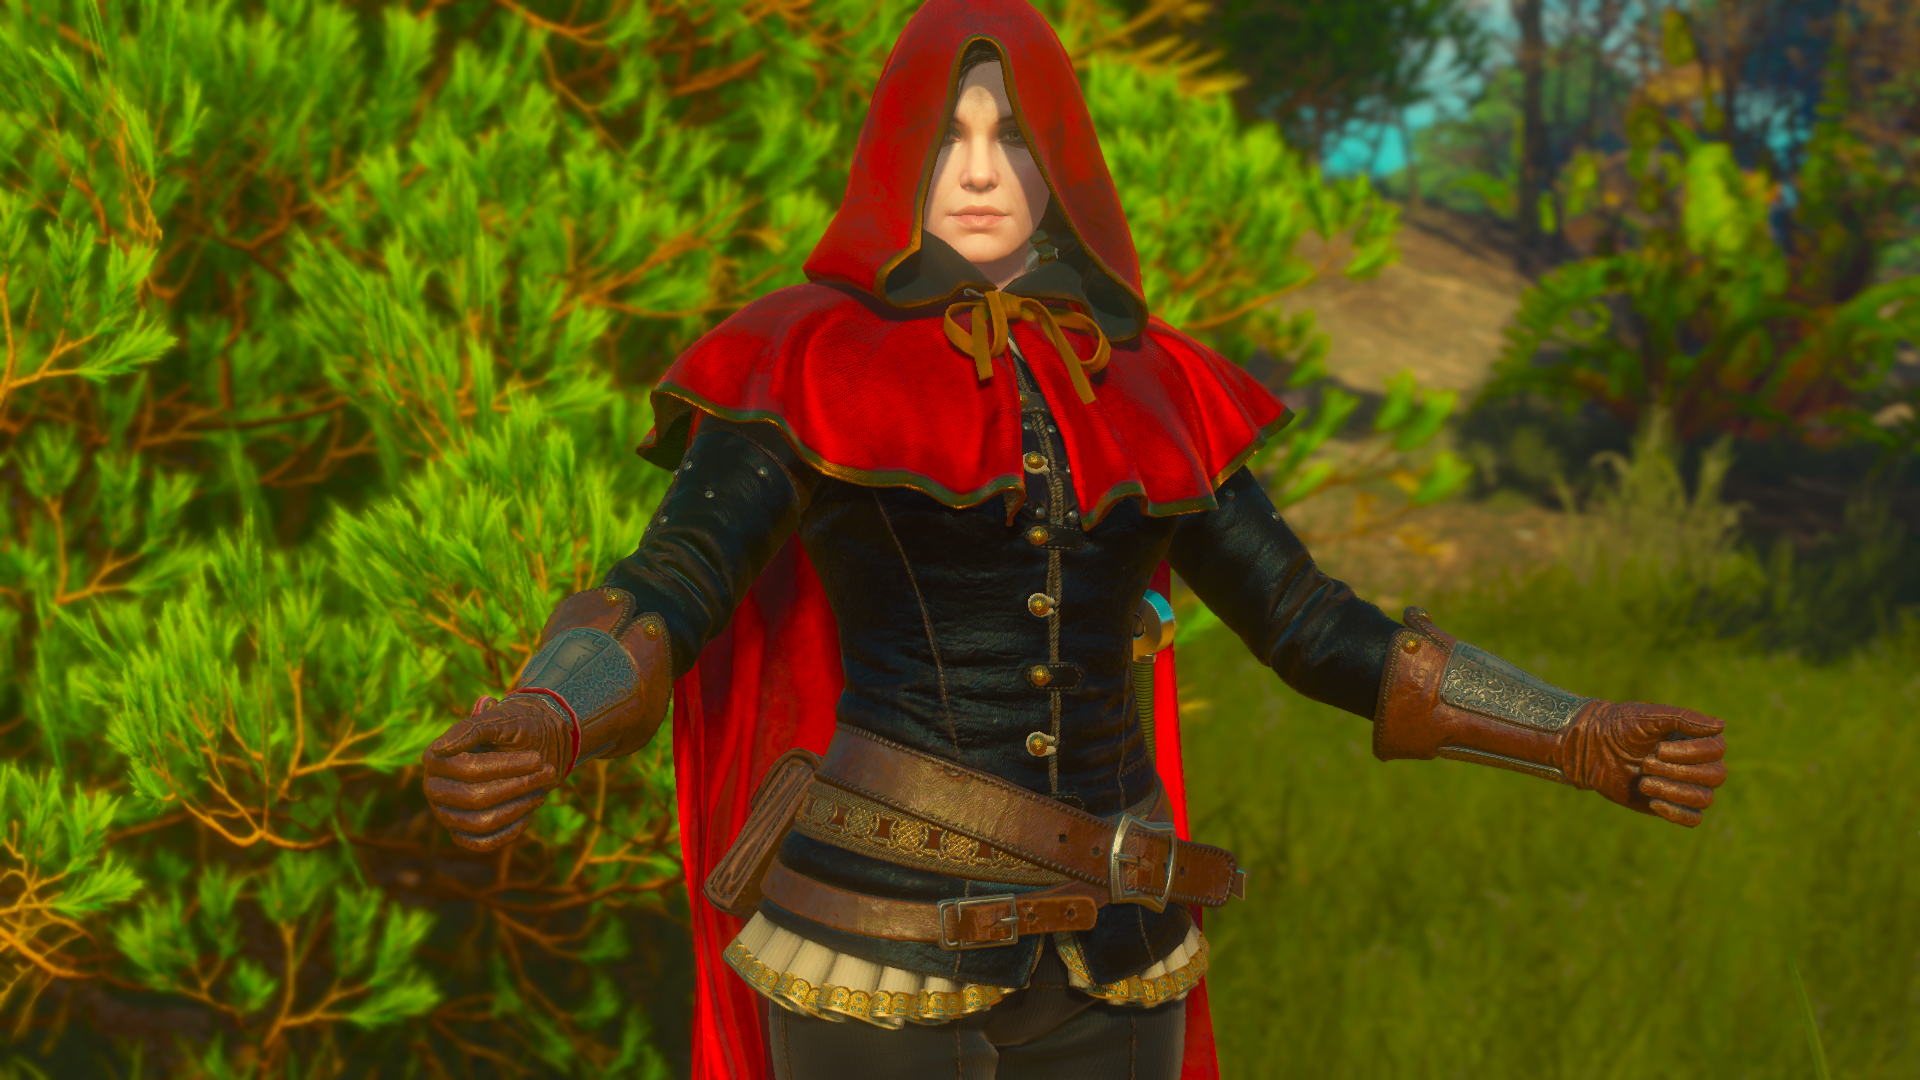 The Witcher 3 Screenshot 2019.08.02 - 17.04.32.86.png - Witcher 3: Wild Hunt, the